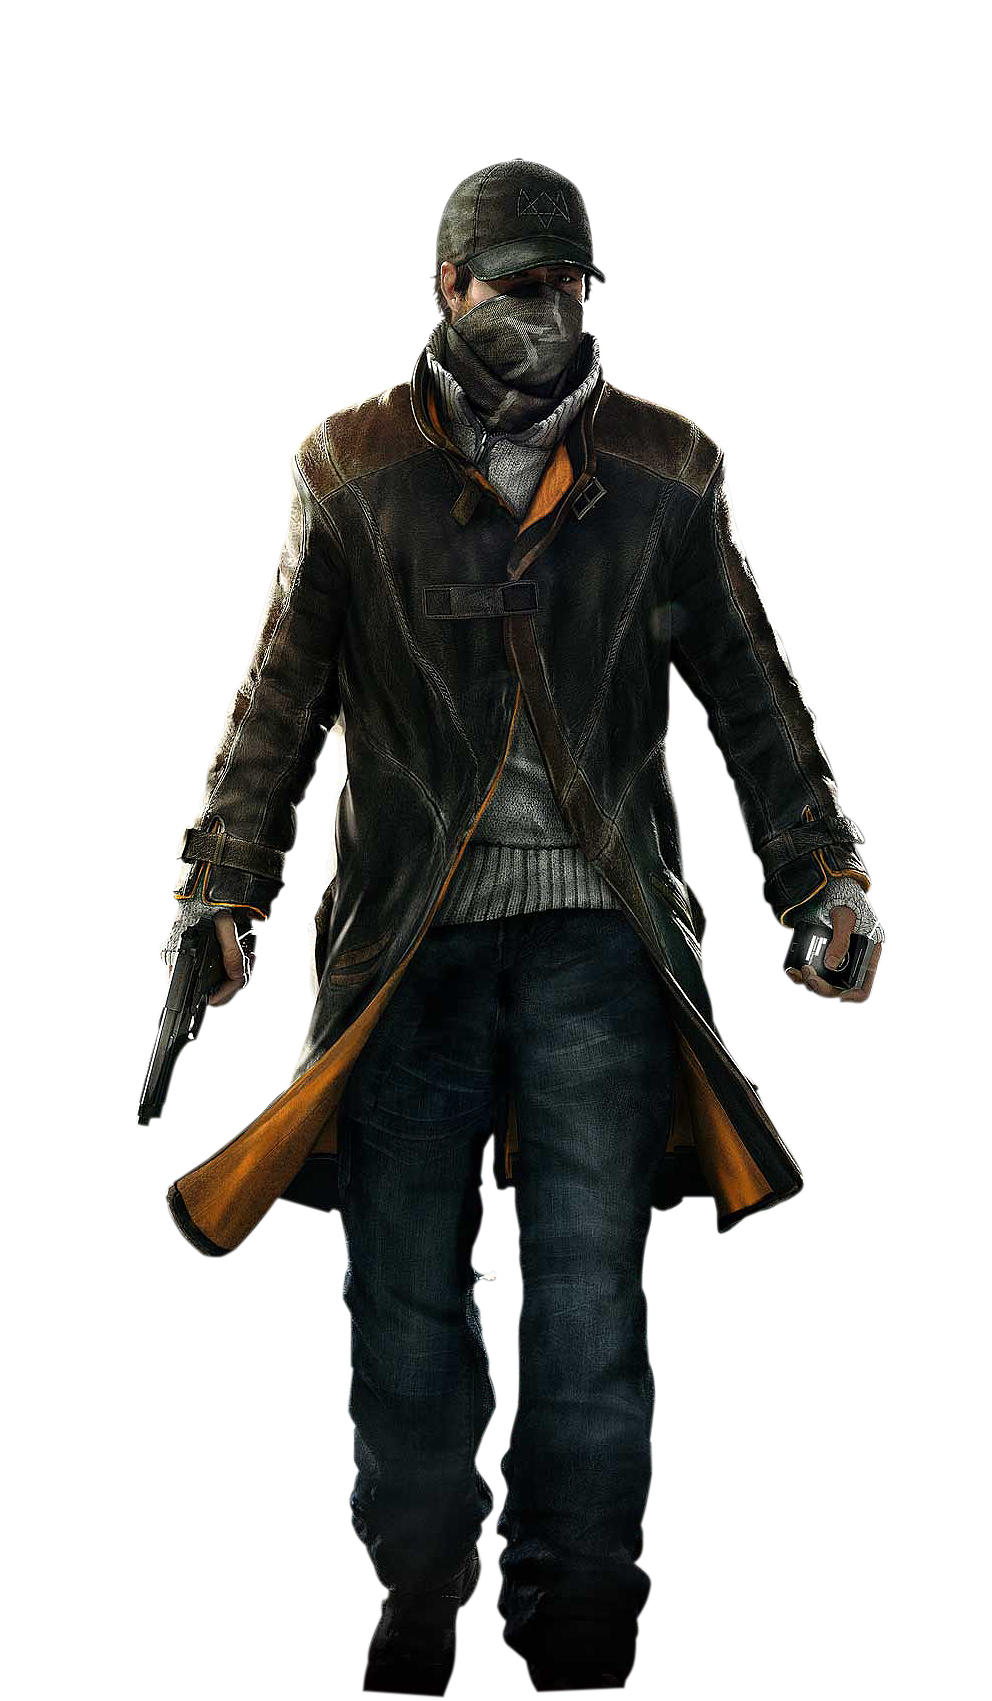 Download Watch Dogs Png Images Transparent Gallery. Advertisement - Watch Dogs, Transparent background PNG HD thumbnail